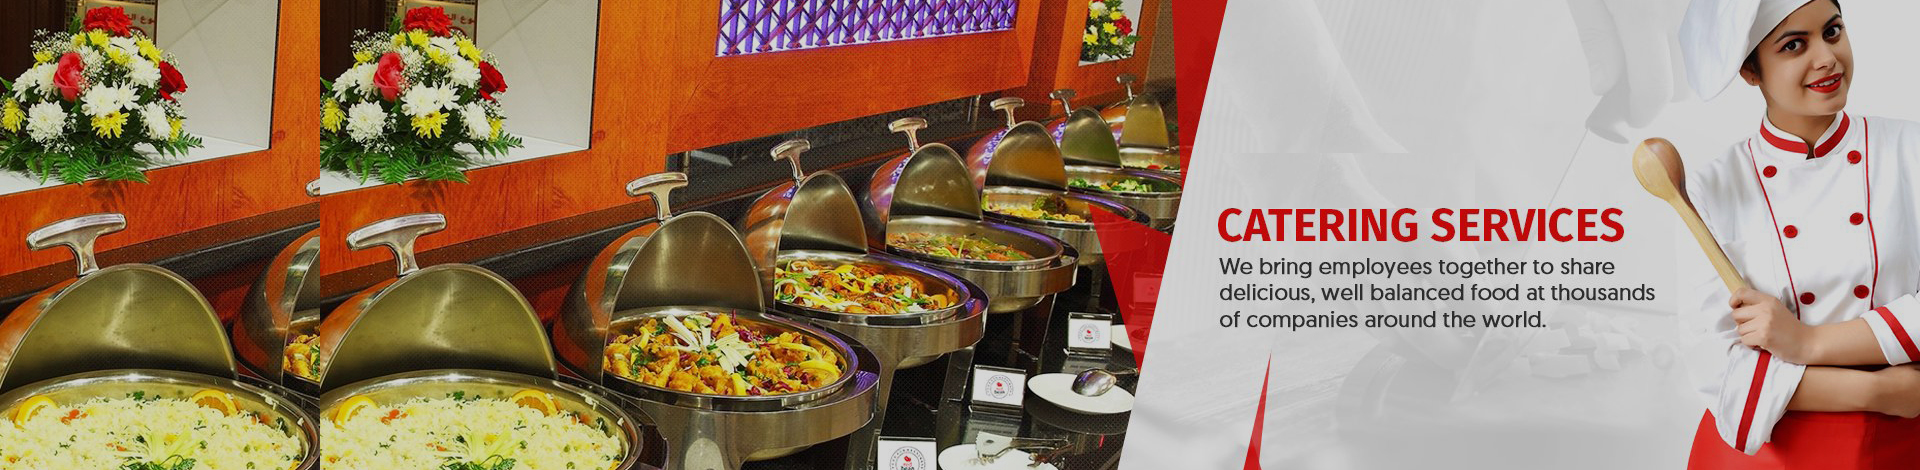 catering services | Hyderabadplace